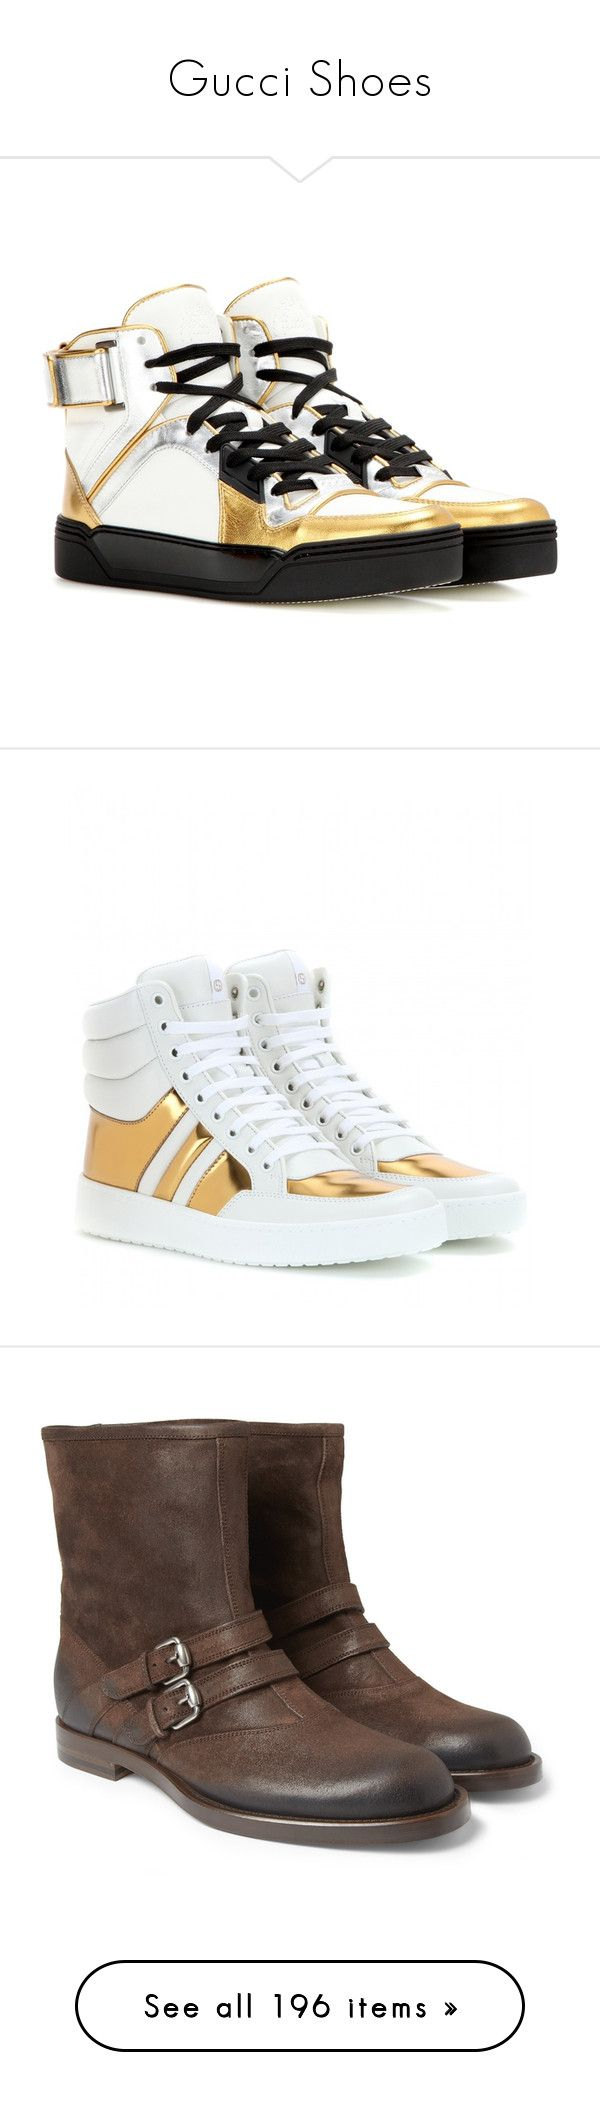 """Gucci Shoes"" by bianca-cazacu ❤ liked on Polyvore featuring shoes, sneakers, white, white leather sneakers, white hi top sneakers, white leather shoes, leather high tops, white sneakers, sapatos and gucci high tops"